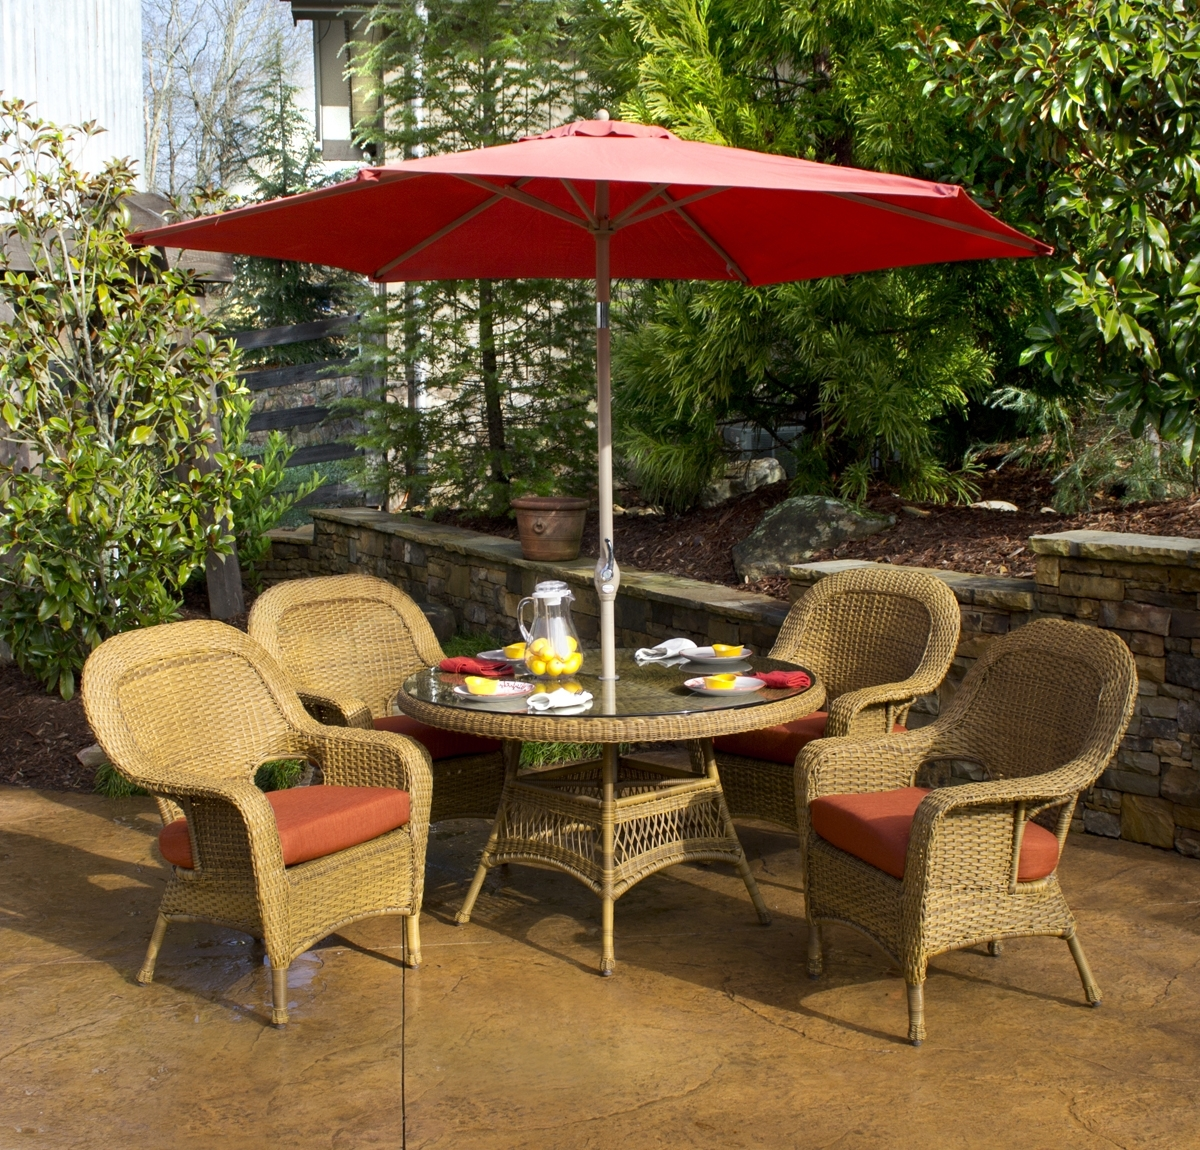 Patio Furniture With Umbrellas Pertaining To Favorite Cute Umbrella For Patio Table : Life On The Move – Umbrella For (Gallery 10 of 20)